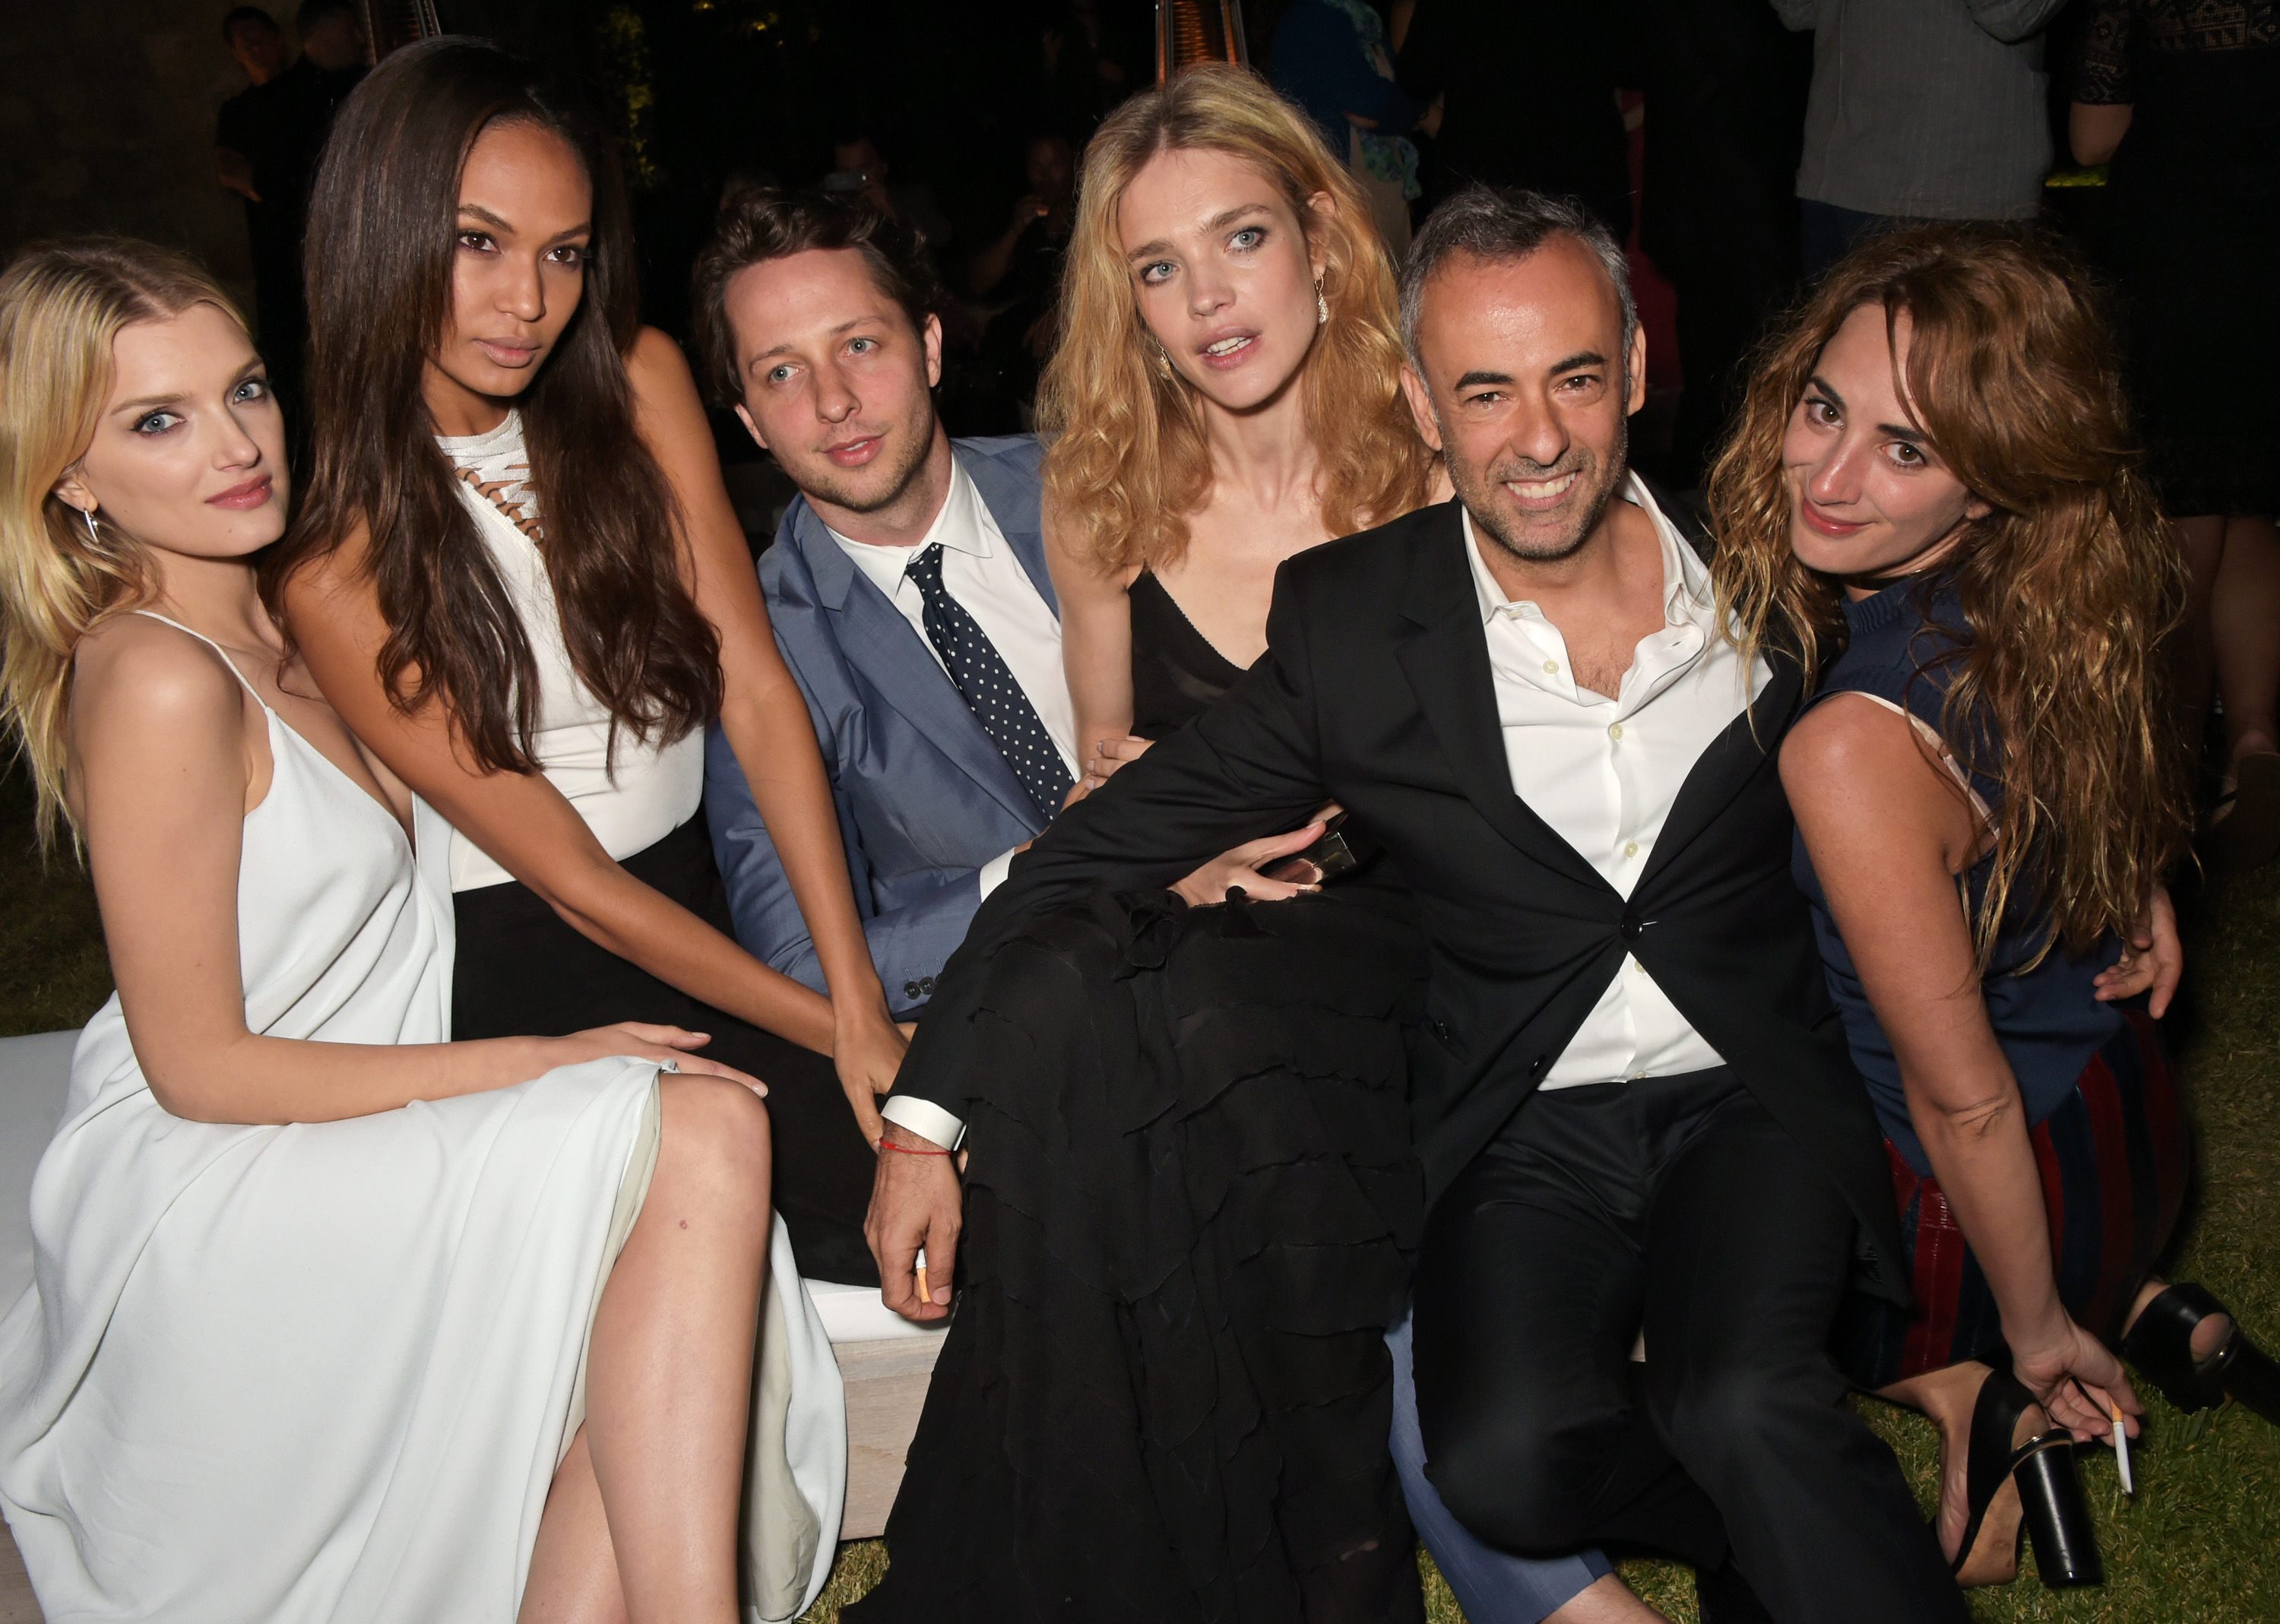 <p>A night of supermodels, selfies and amazing dresses as Calvin Klein celebrates women in film at the Cannes Film Festival.<br><br></p><br><div> </div>